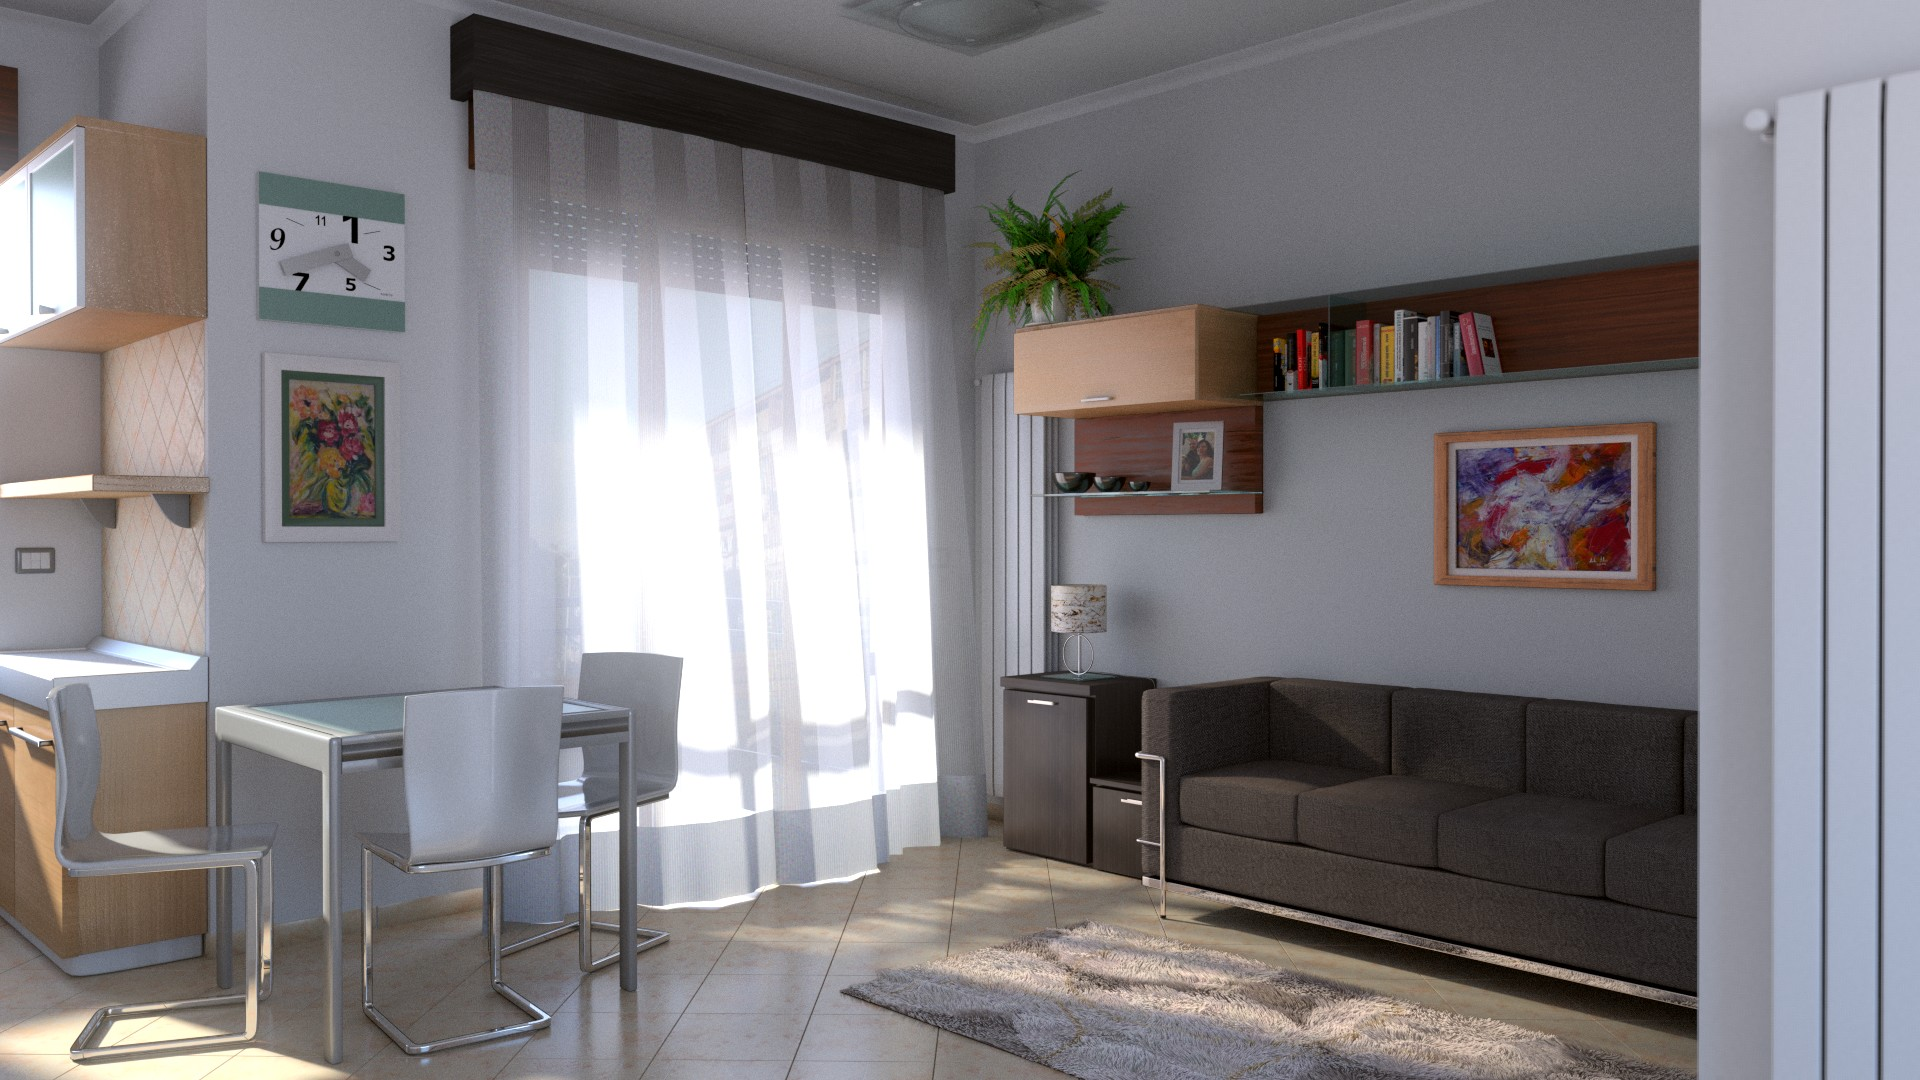 my living room by andr3a 00 on deviantart best design my living room contemporary ltrevents com